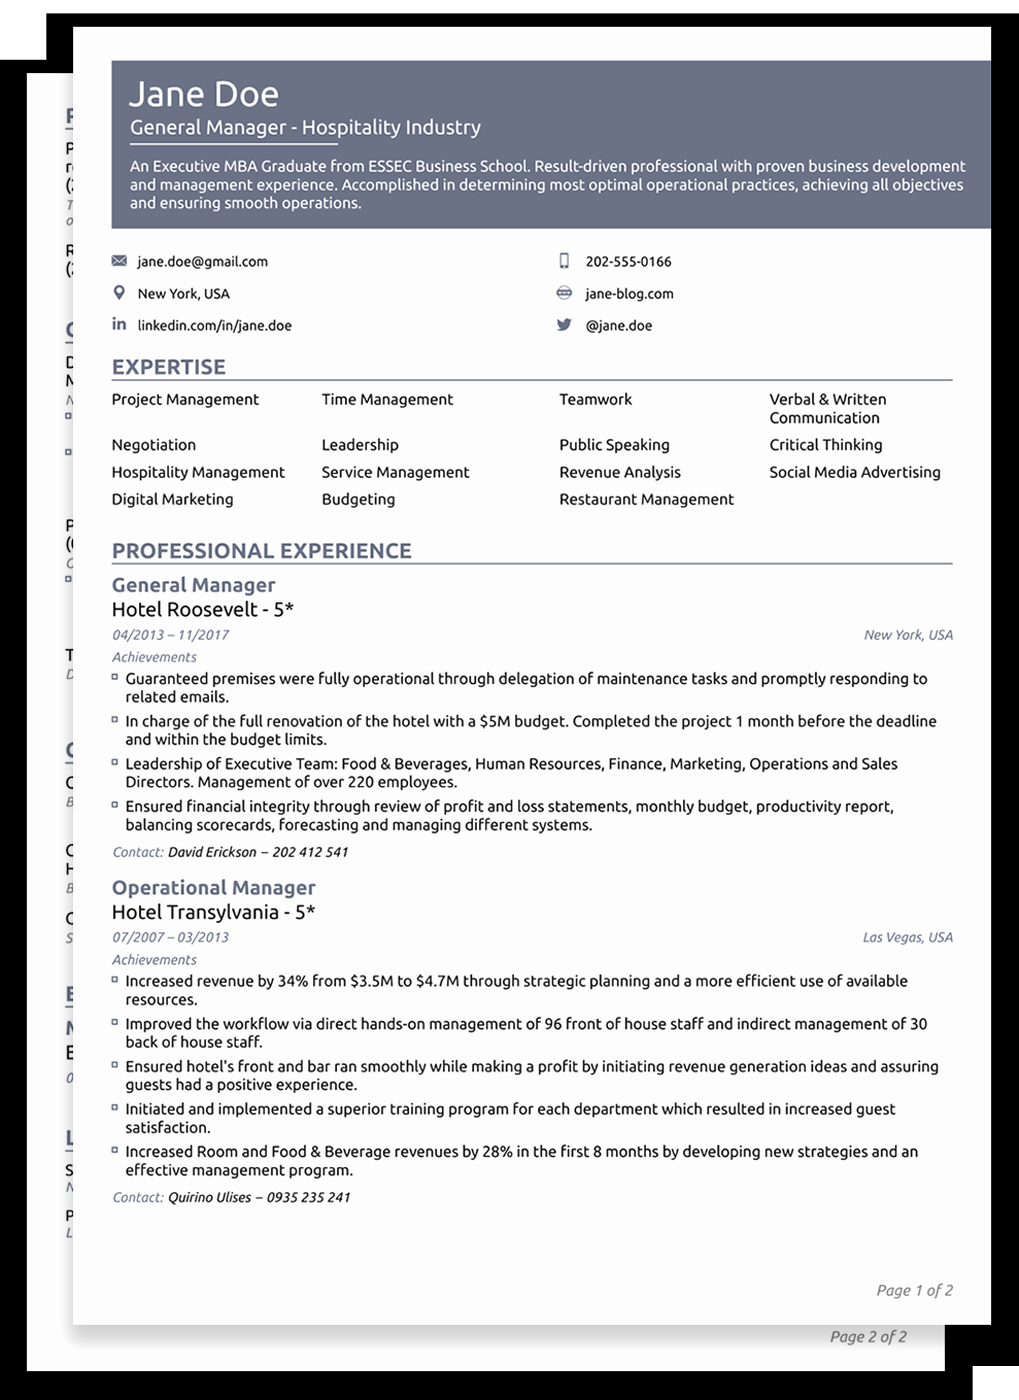 Functional Resume Template Word Best Of 8 Cv Templates for 2019 1 Edit & Download